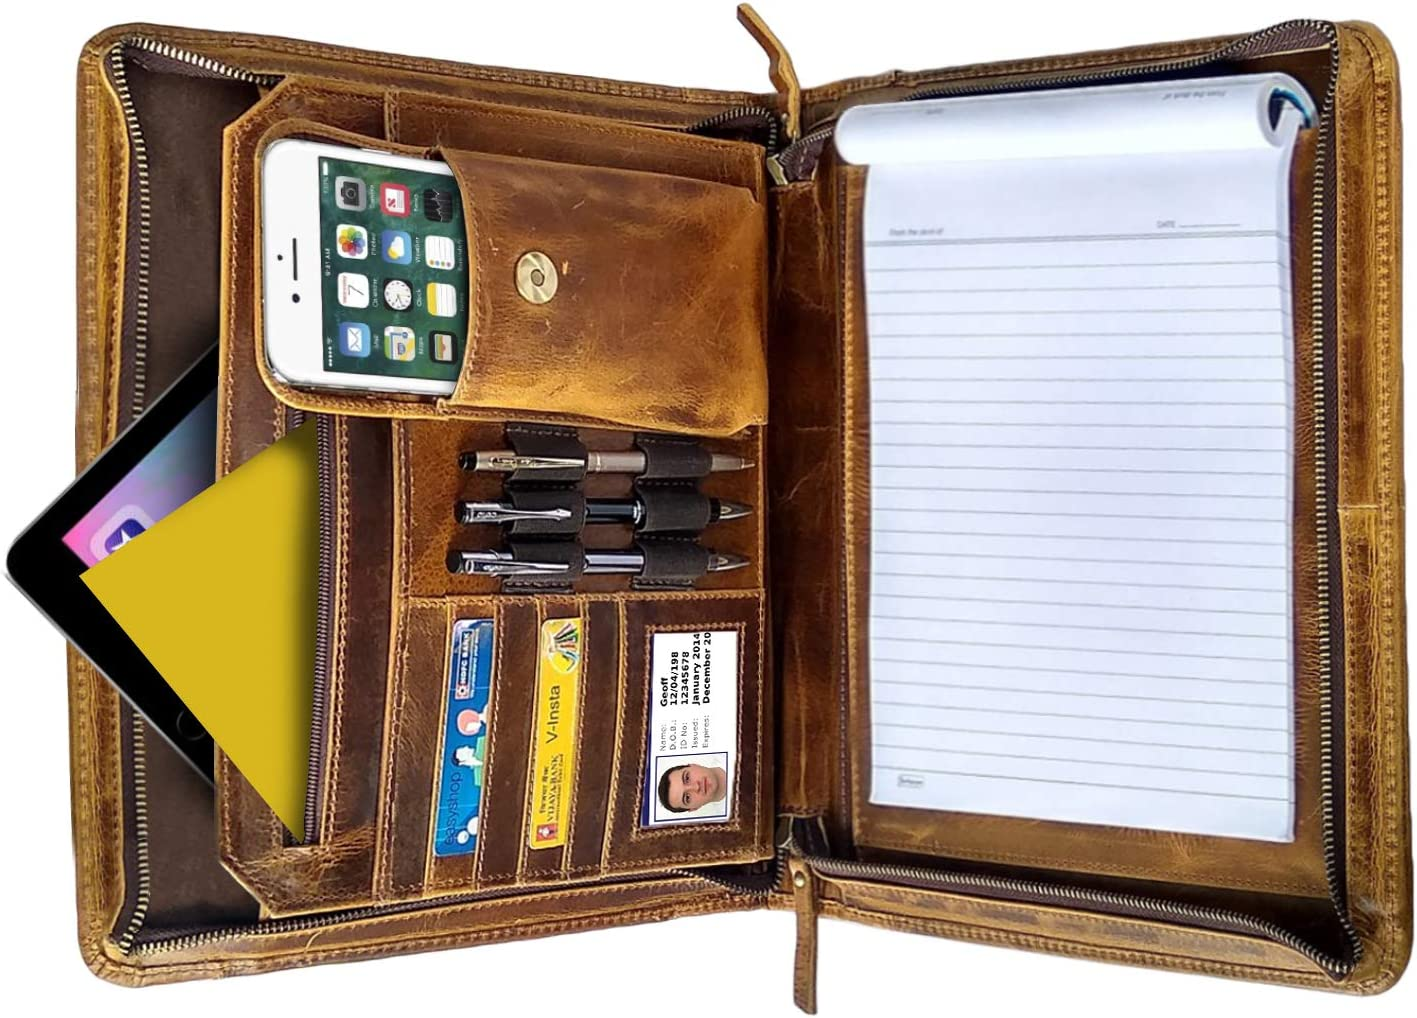 Business Leather Padfolio Leather Portfolio | Professional Organizer Gift for Men & Women | Durable Leather Padfolio | Easy to Carry with A Zippered Closure | Many Slots, Compartments & Holders